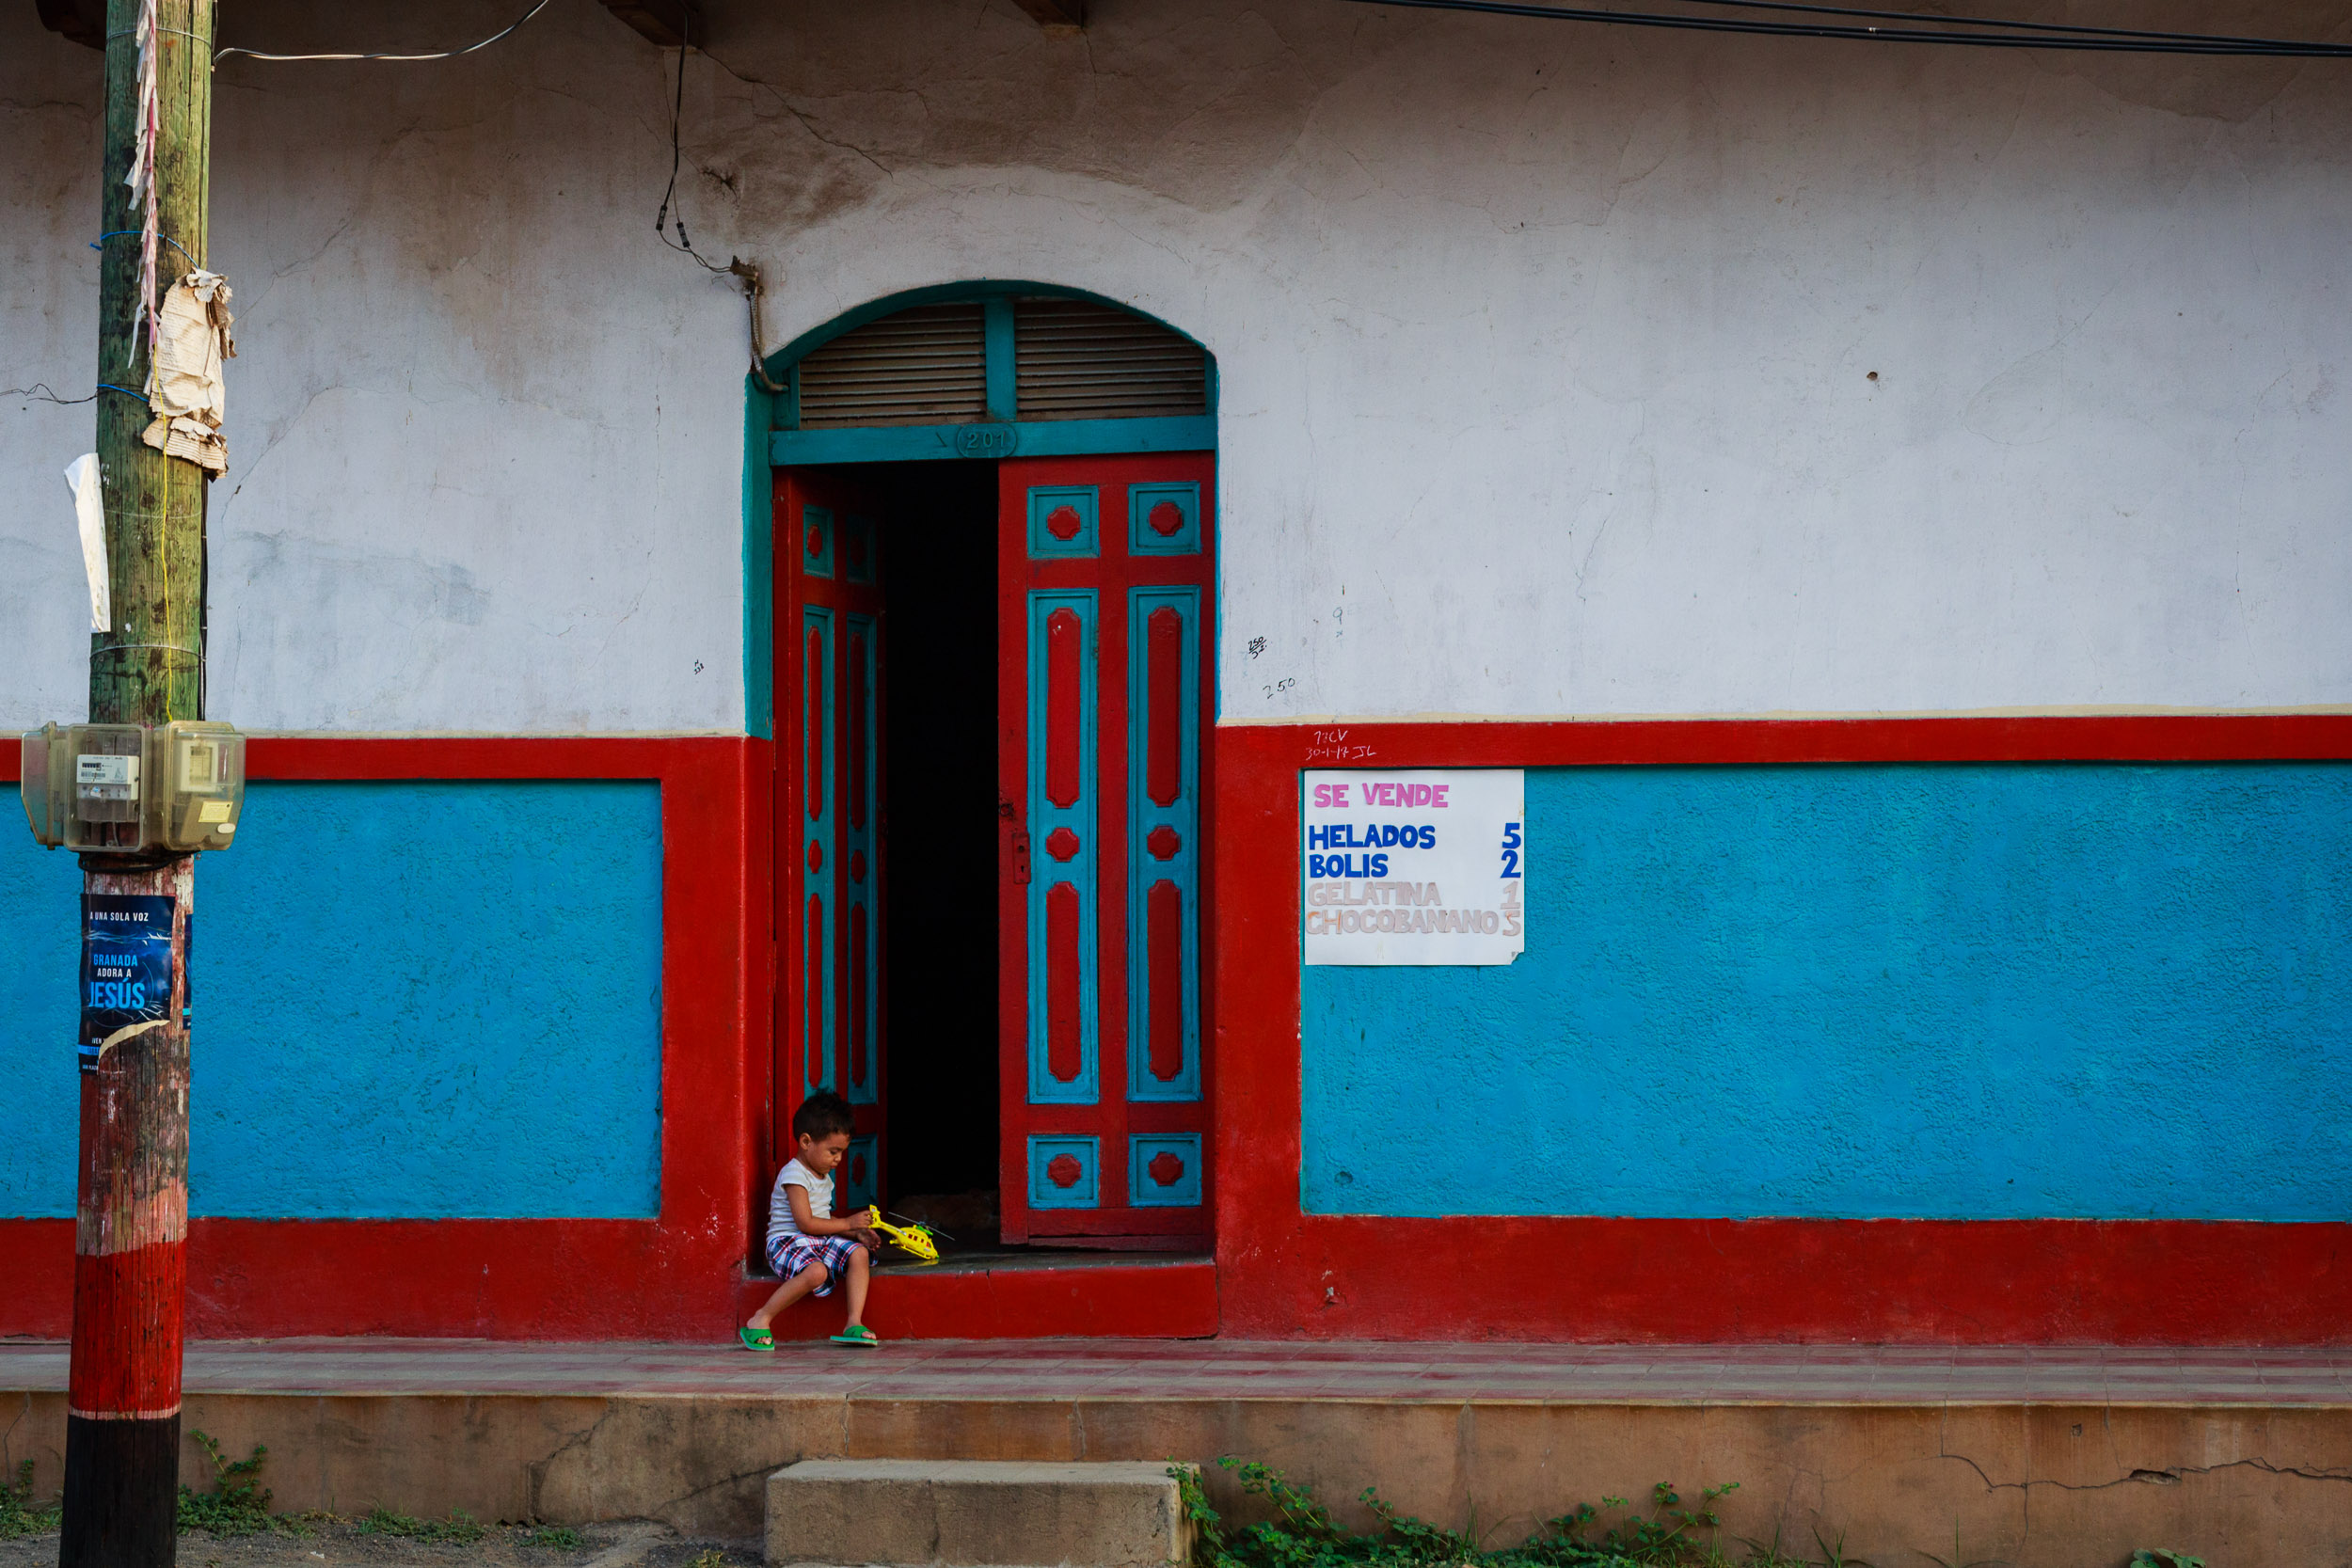 Young boy plays with a helicopter toy in his brightly colored house on a hot morning in Granada, Nicaragua.